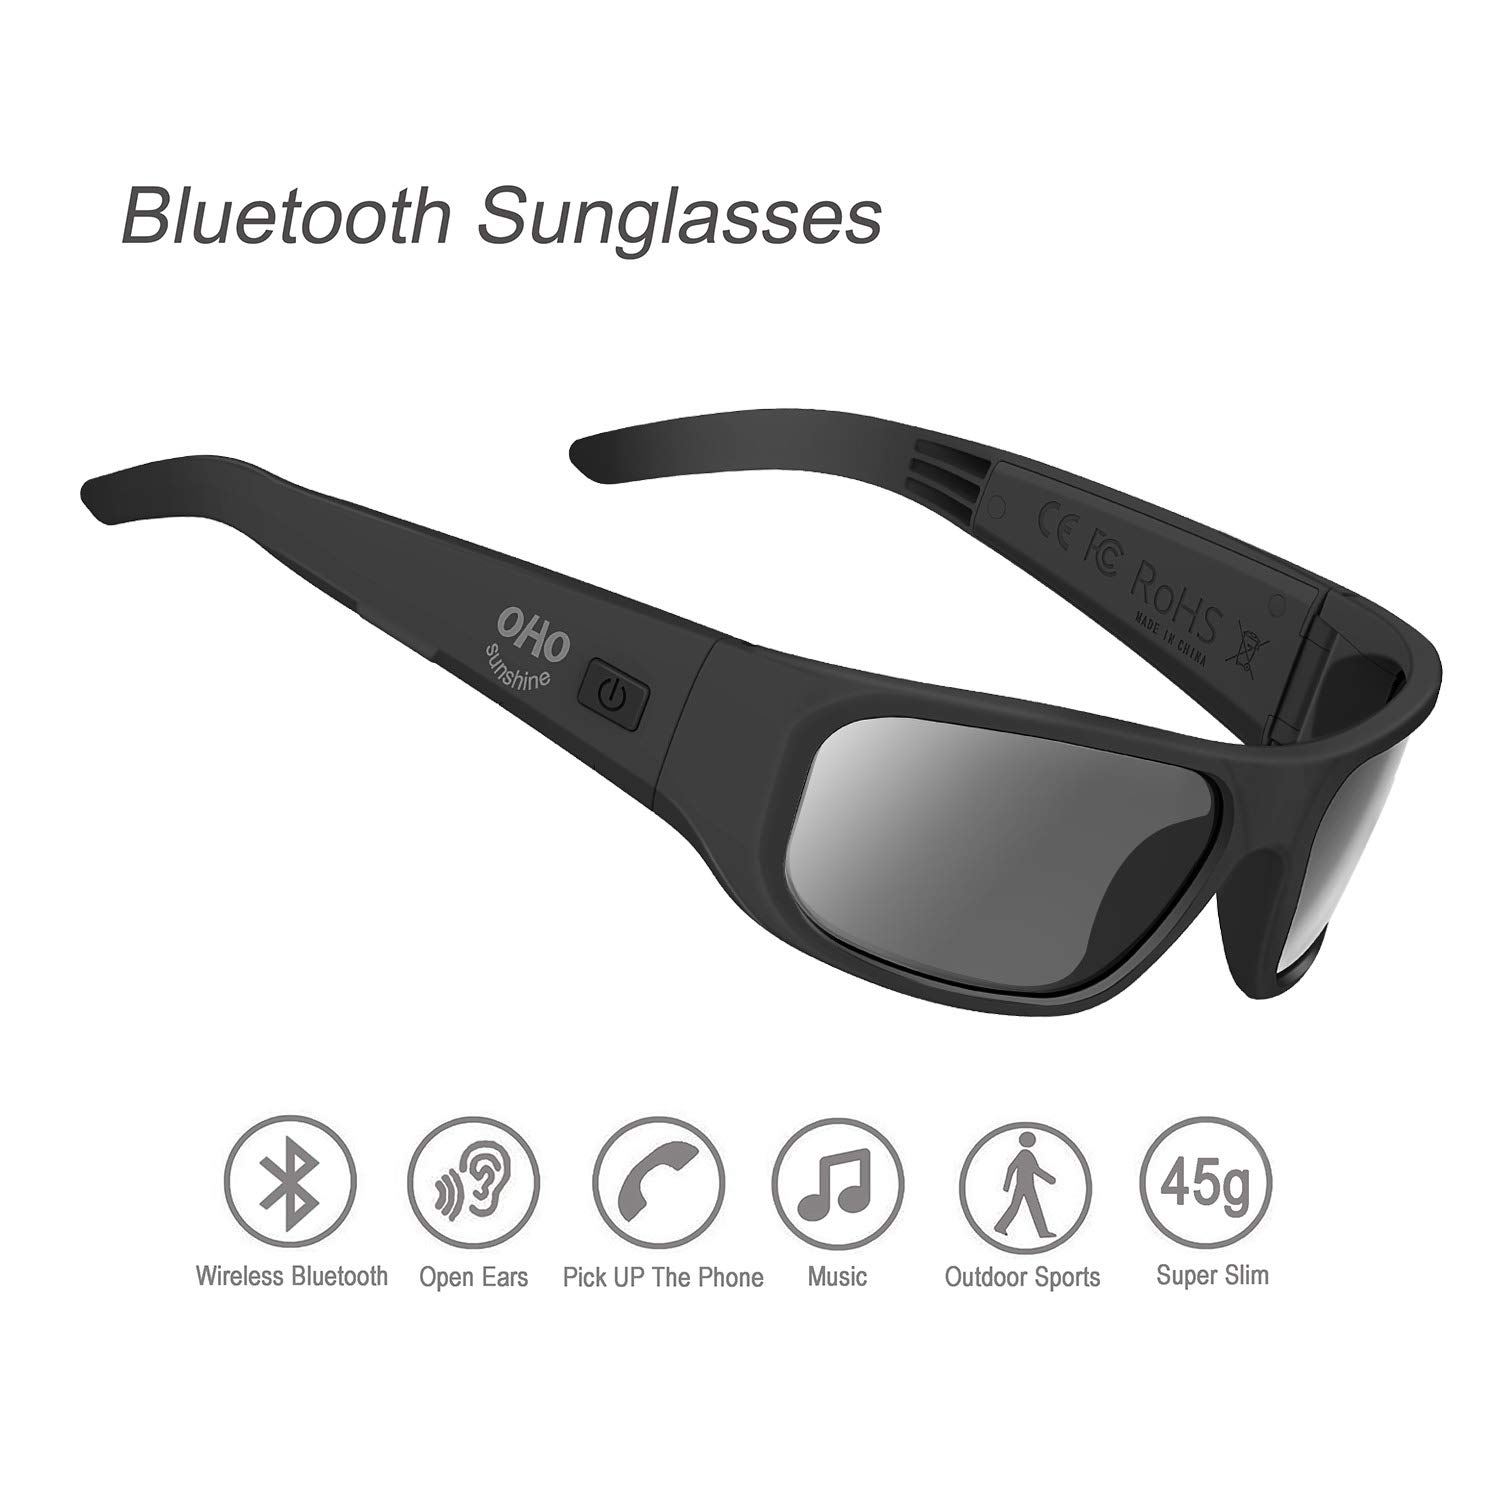 Amazon.com: Gafas de sol inalámbricas con Bluetooth, con ...